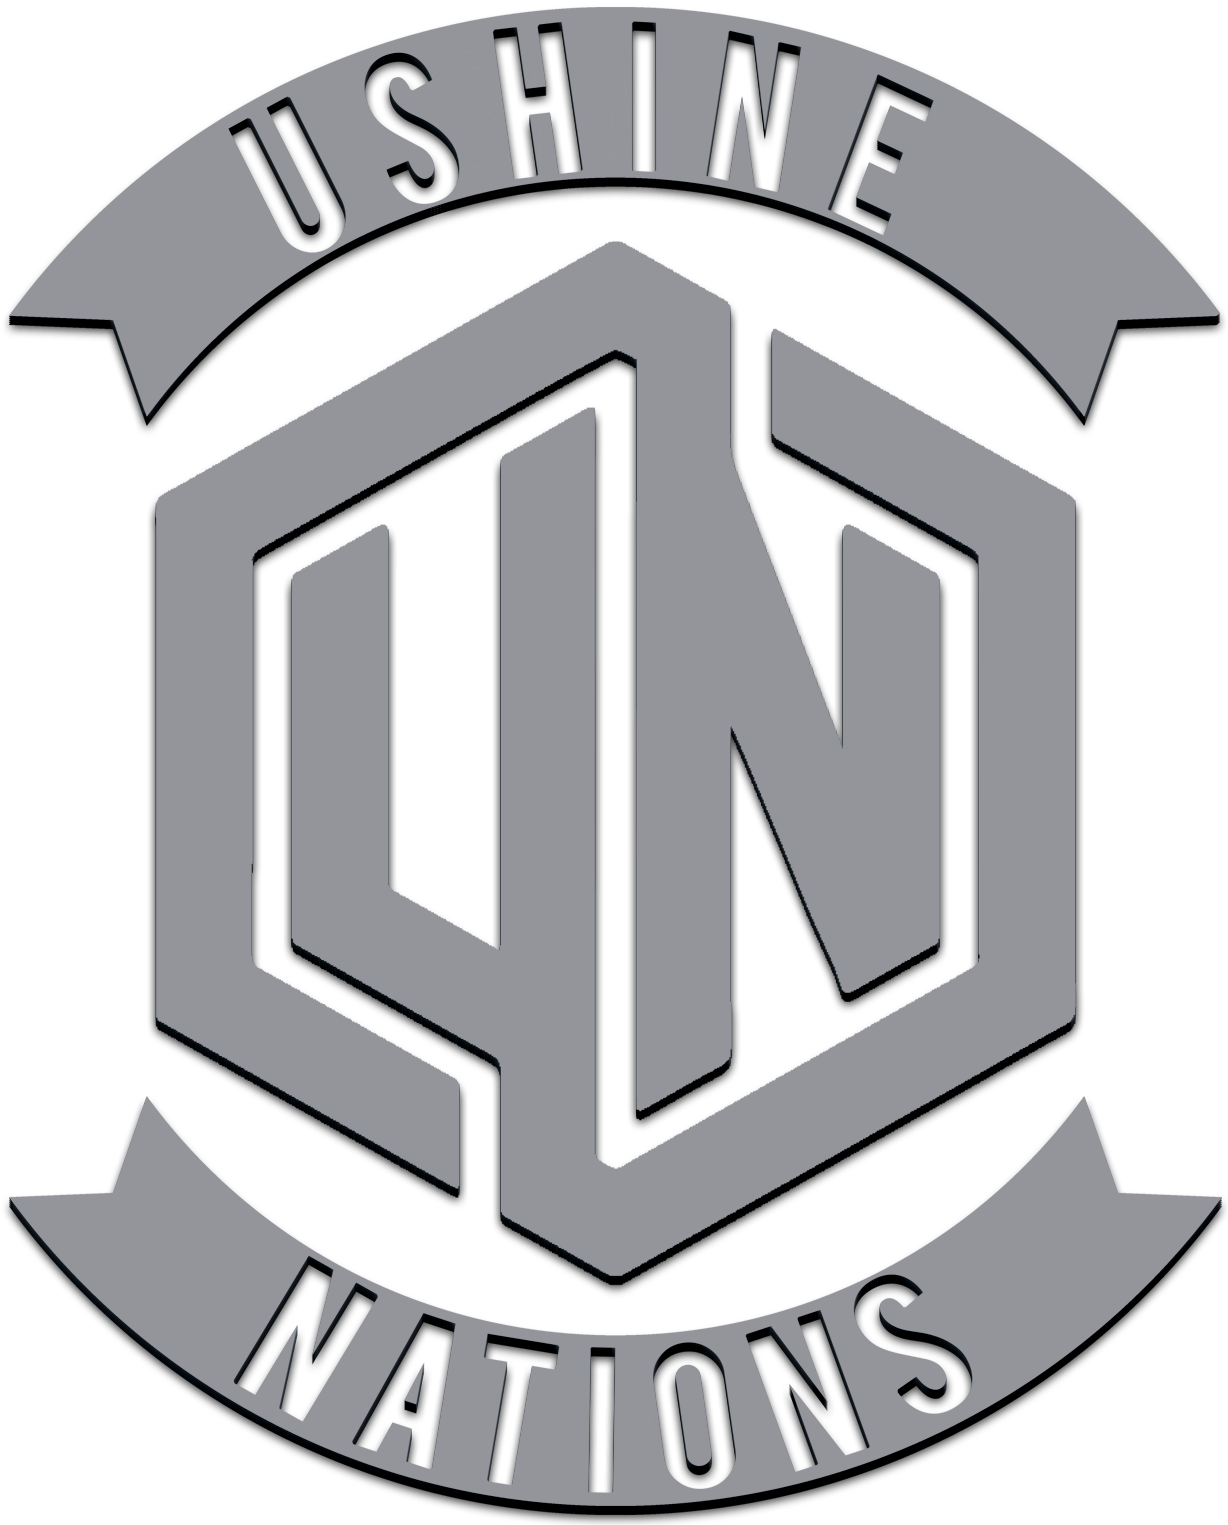 Ushine Nations | Worldwide Services for Artists.